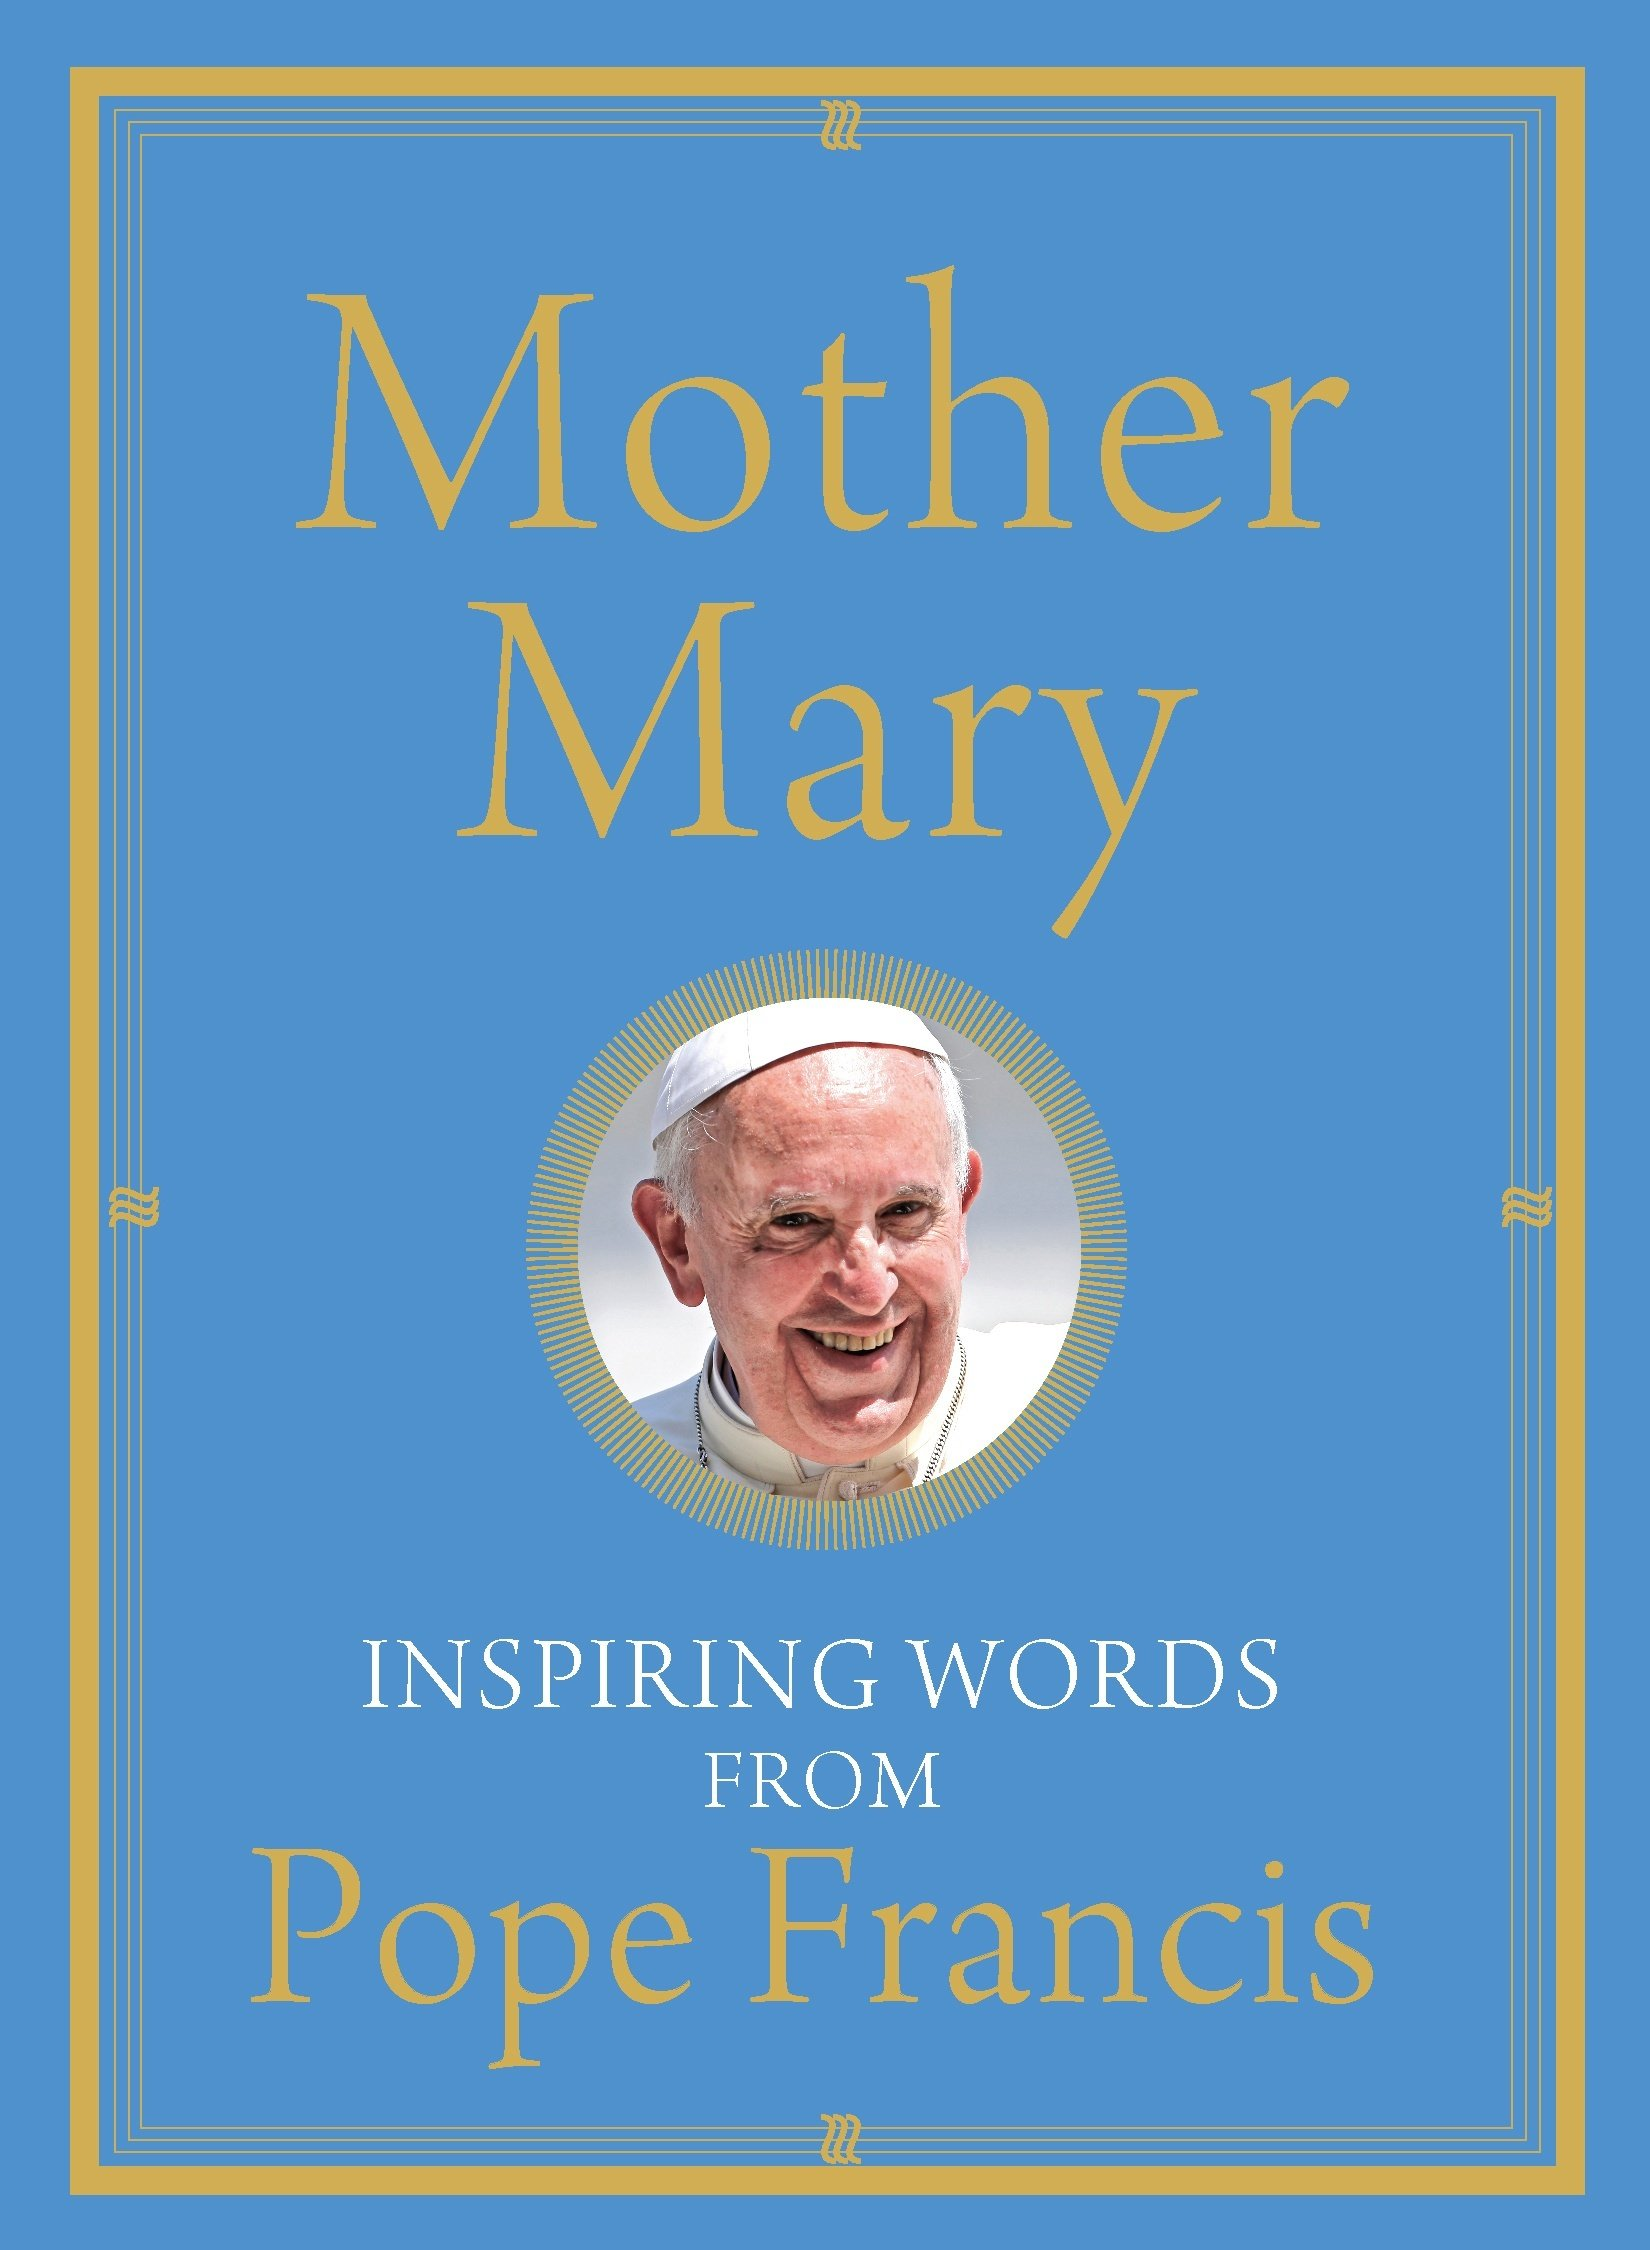 https://shop.franciscanmedia.org/products/mother-mary-inspiring-words-from-pope-francis